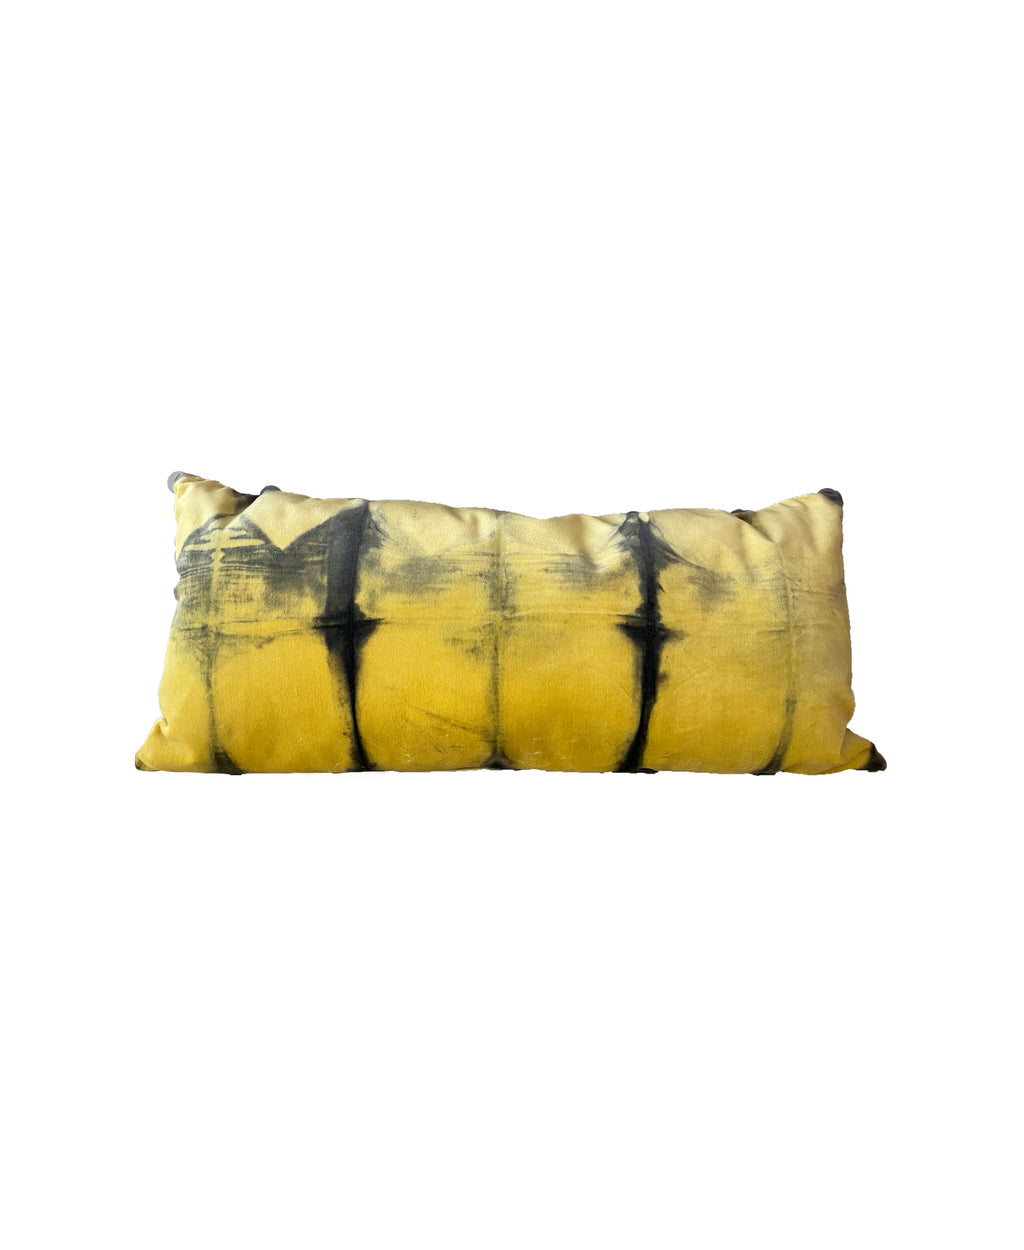 YELLOW TIE DYE VELVET PILLOWS